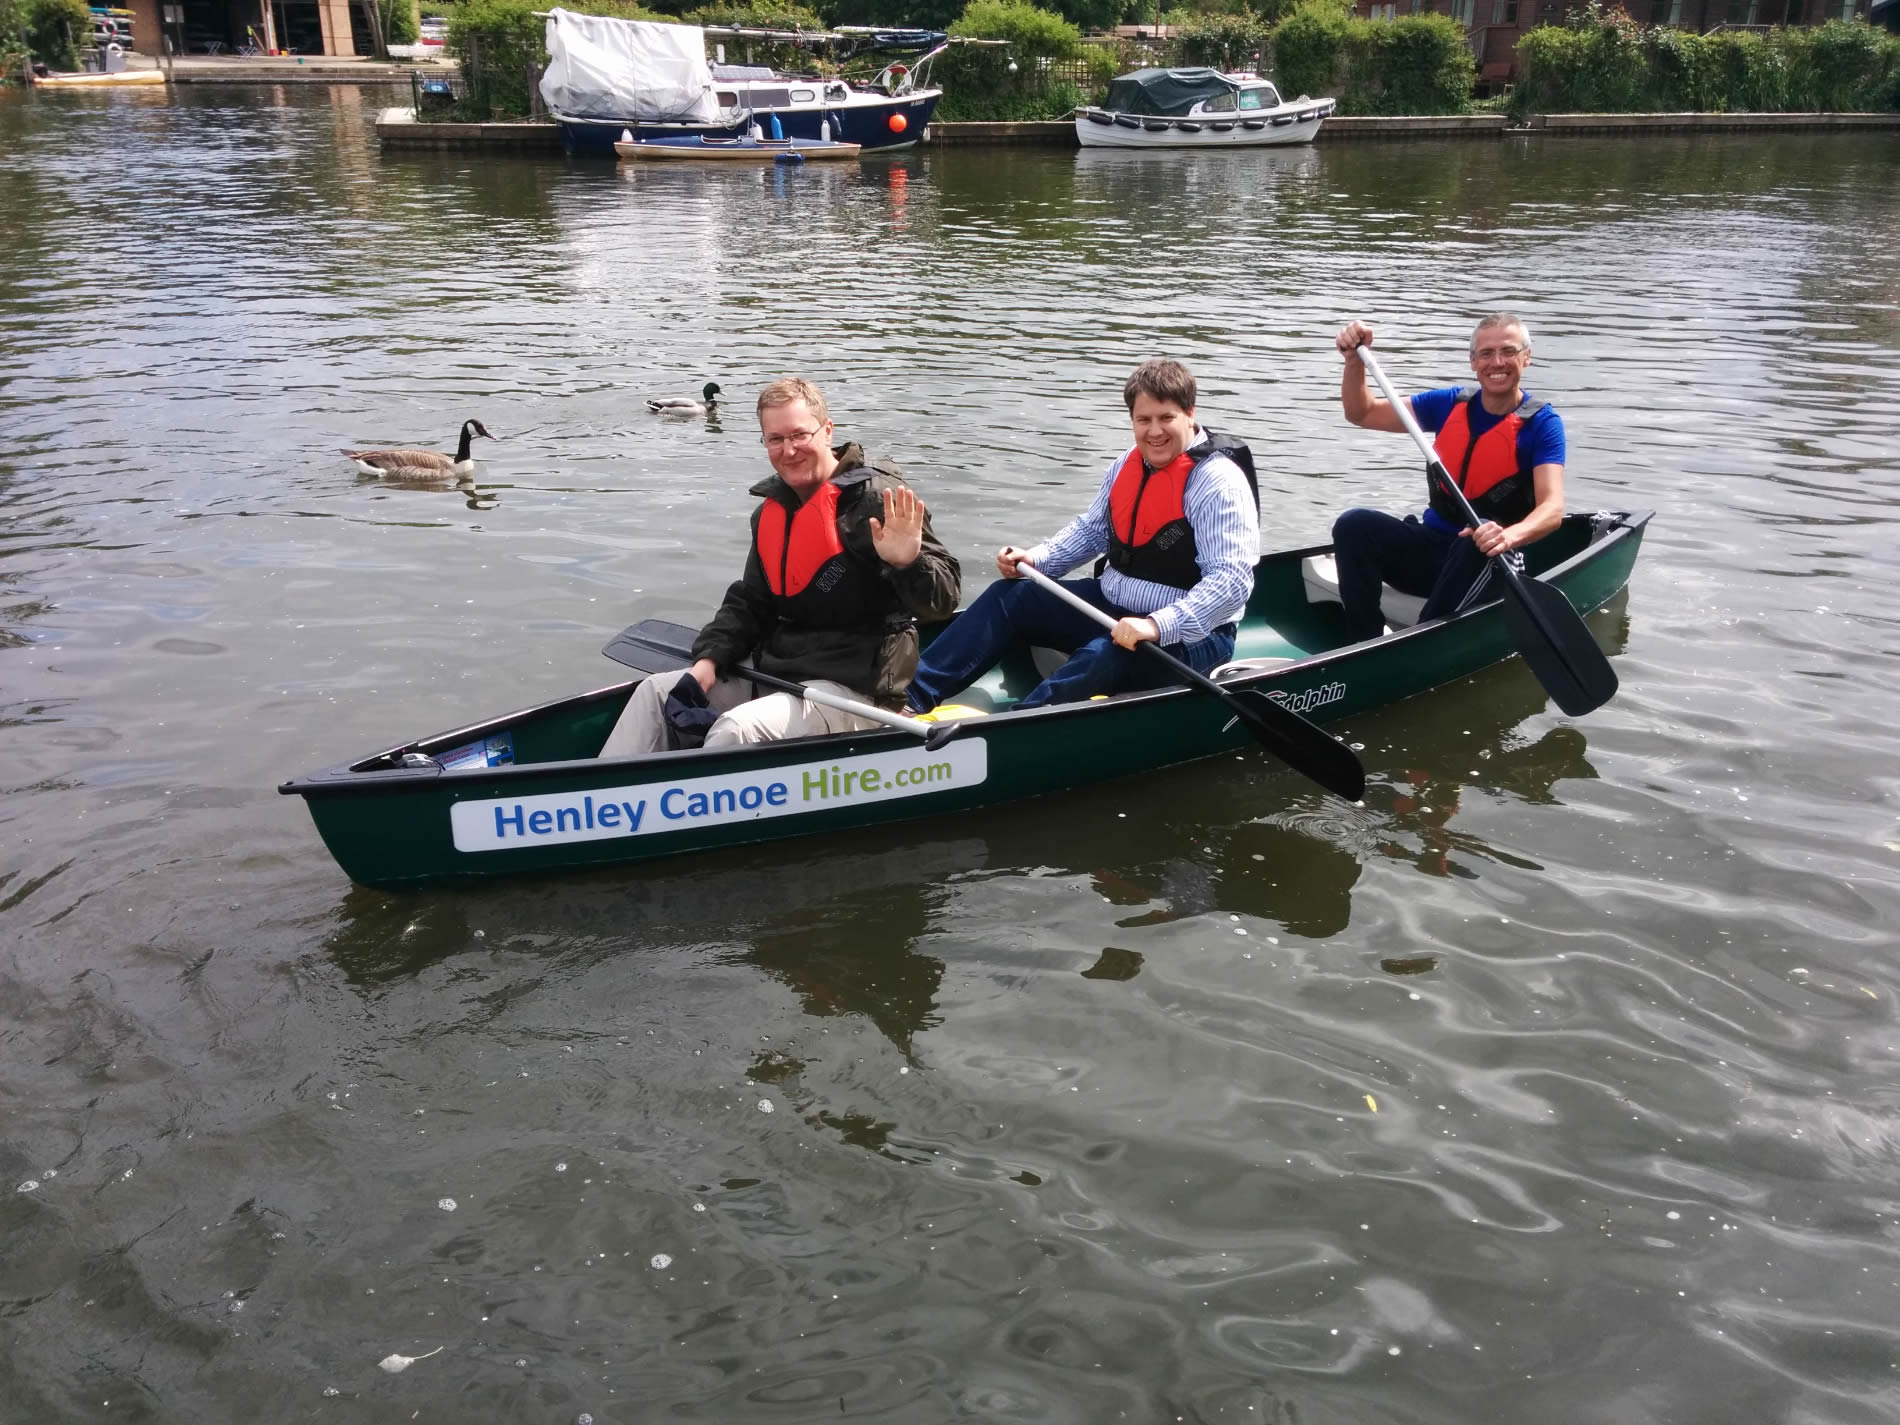 1 Hour Hire Henley Canoe Hire